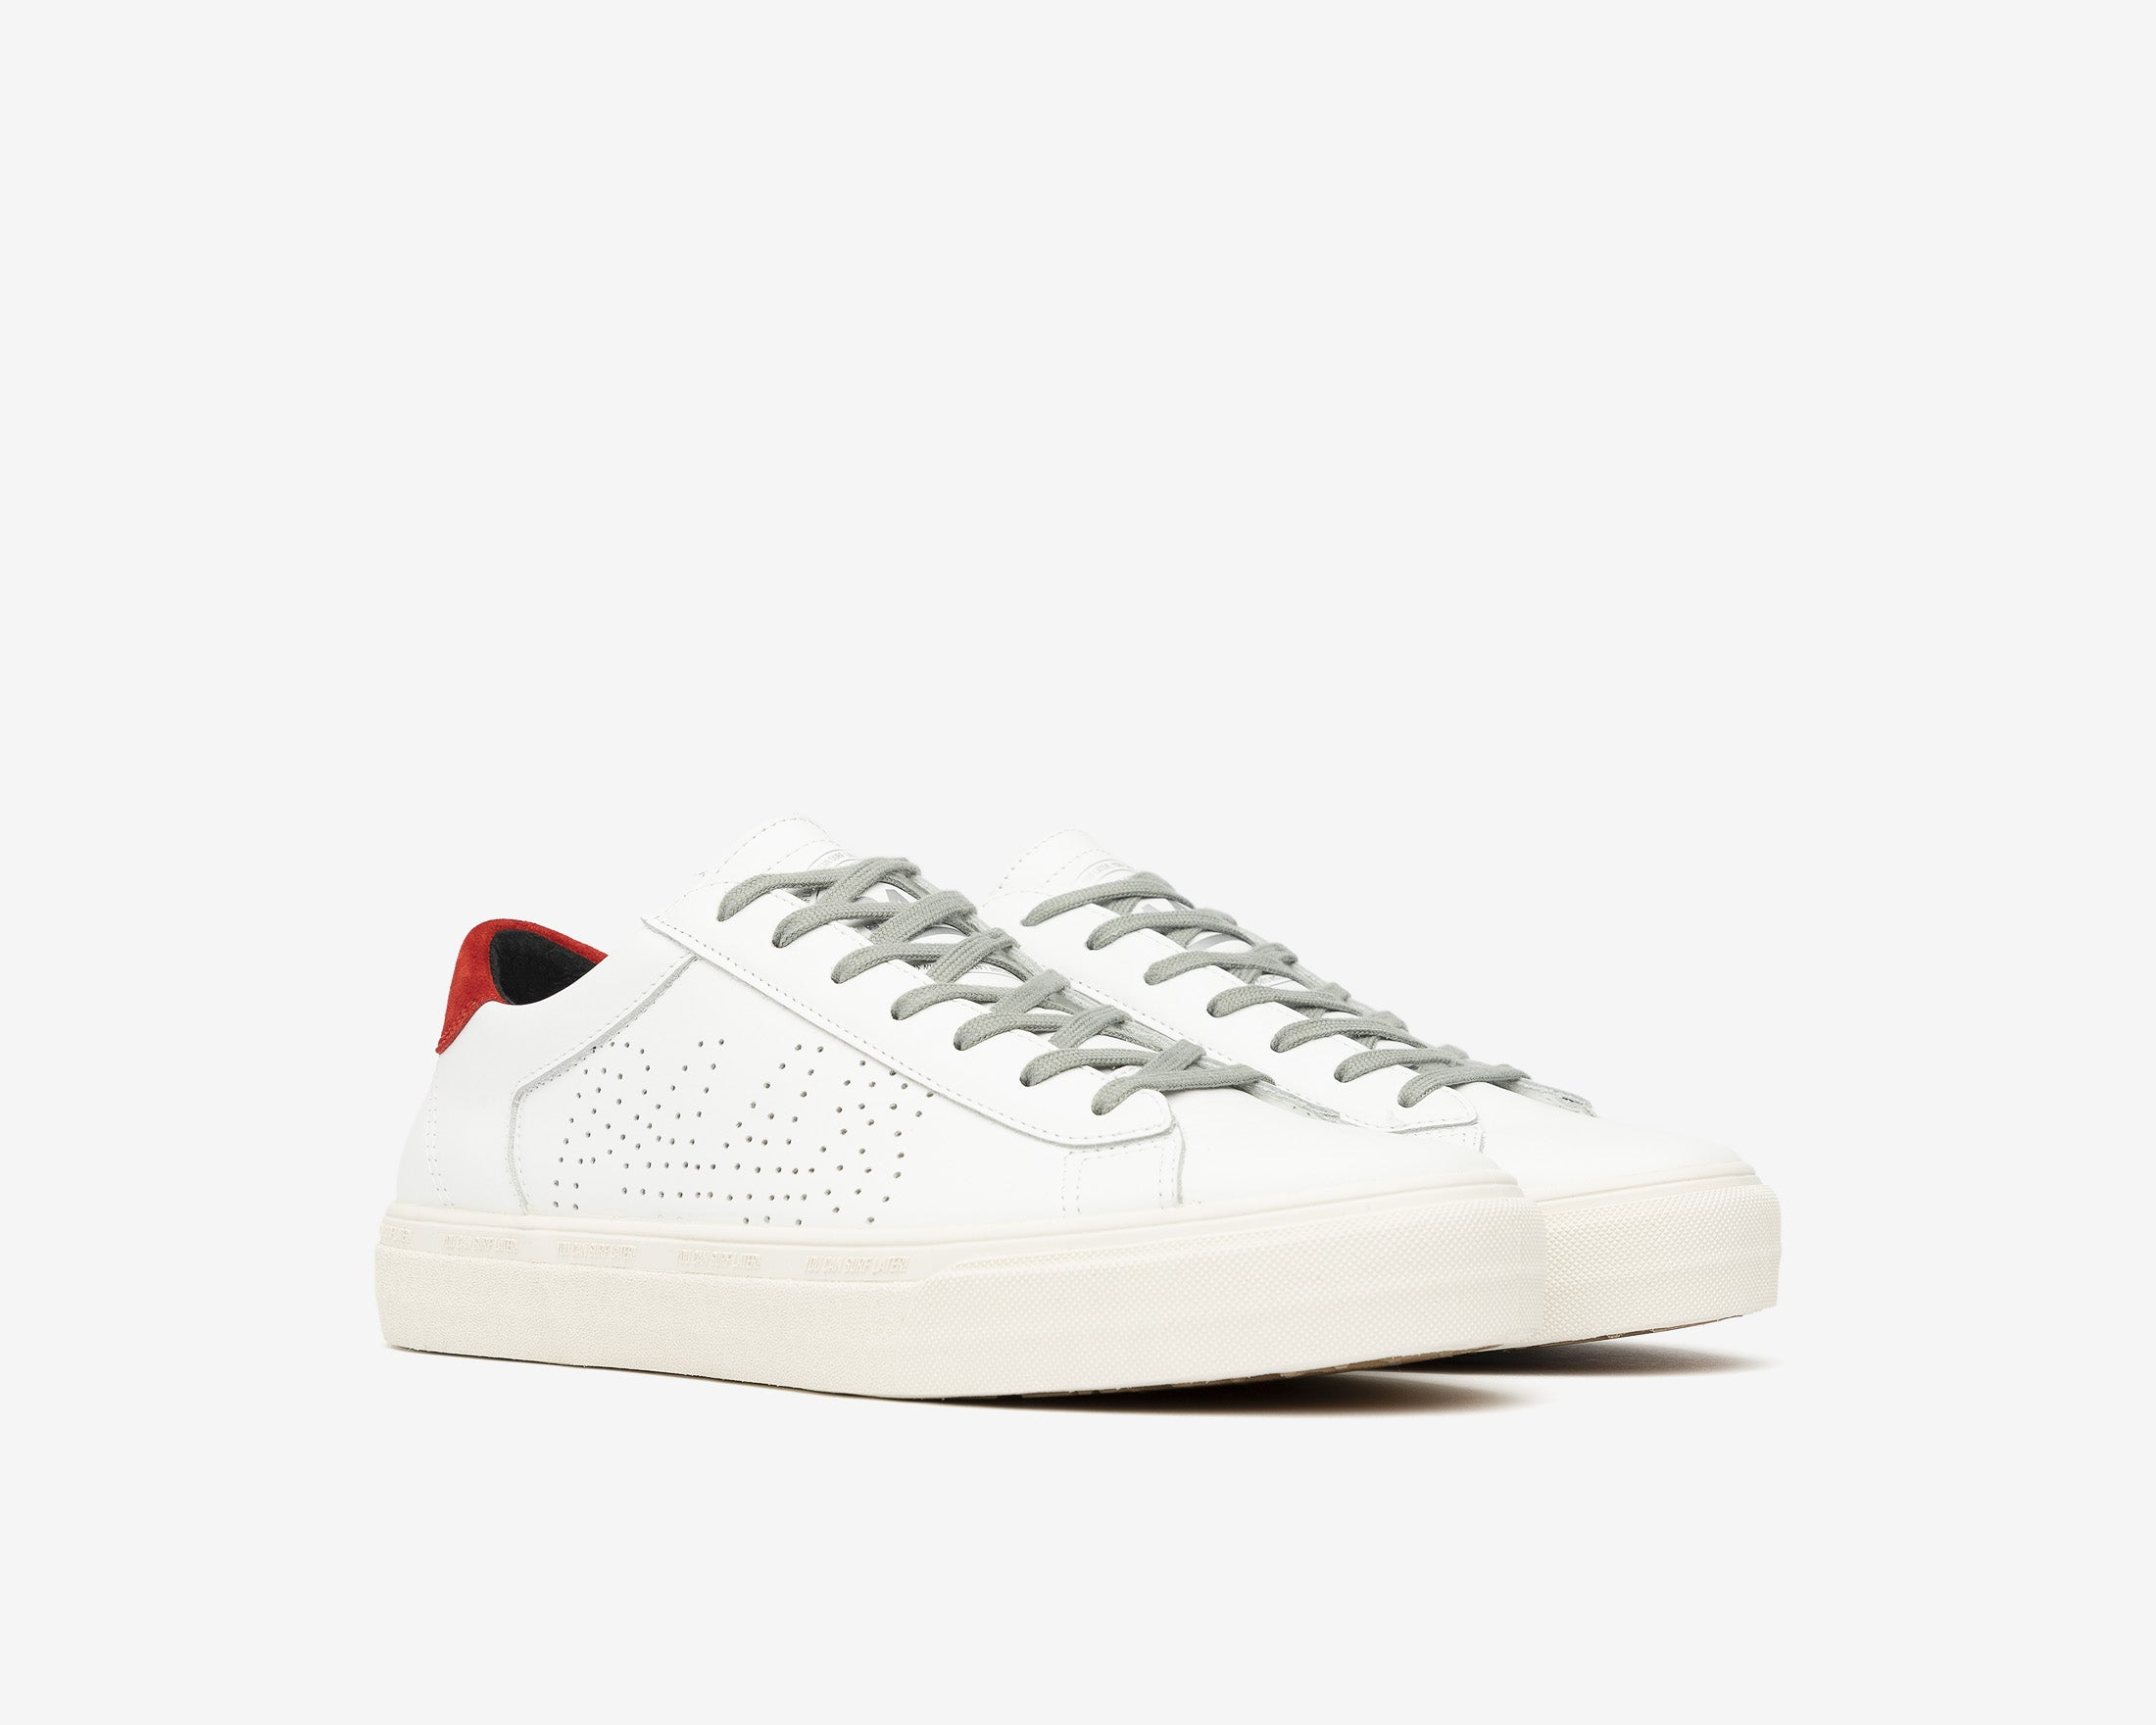 Y.C.S.L. Low-Top Volcanized Sneaker in White/Red - Side